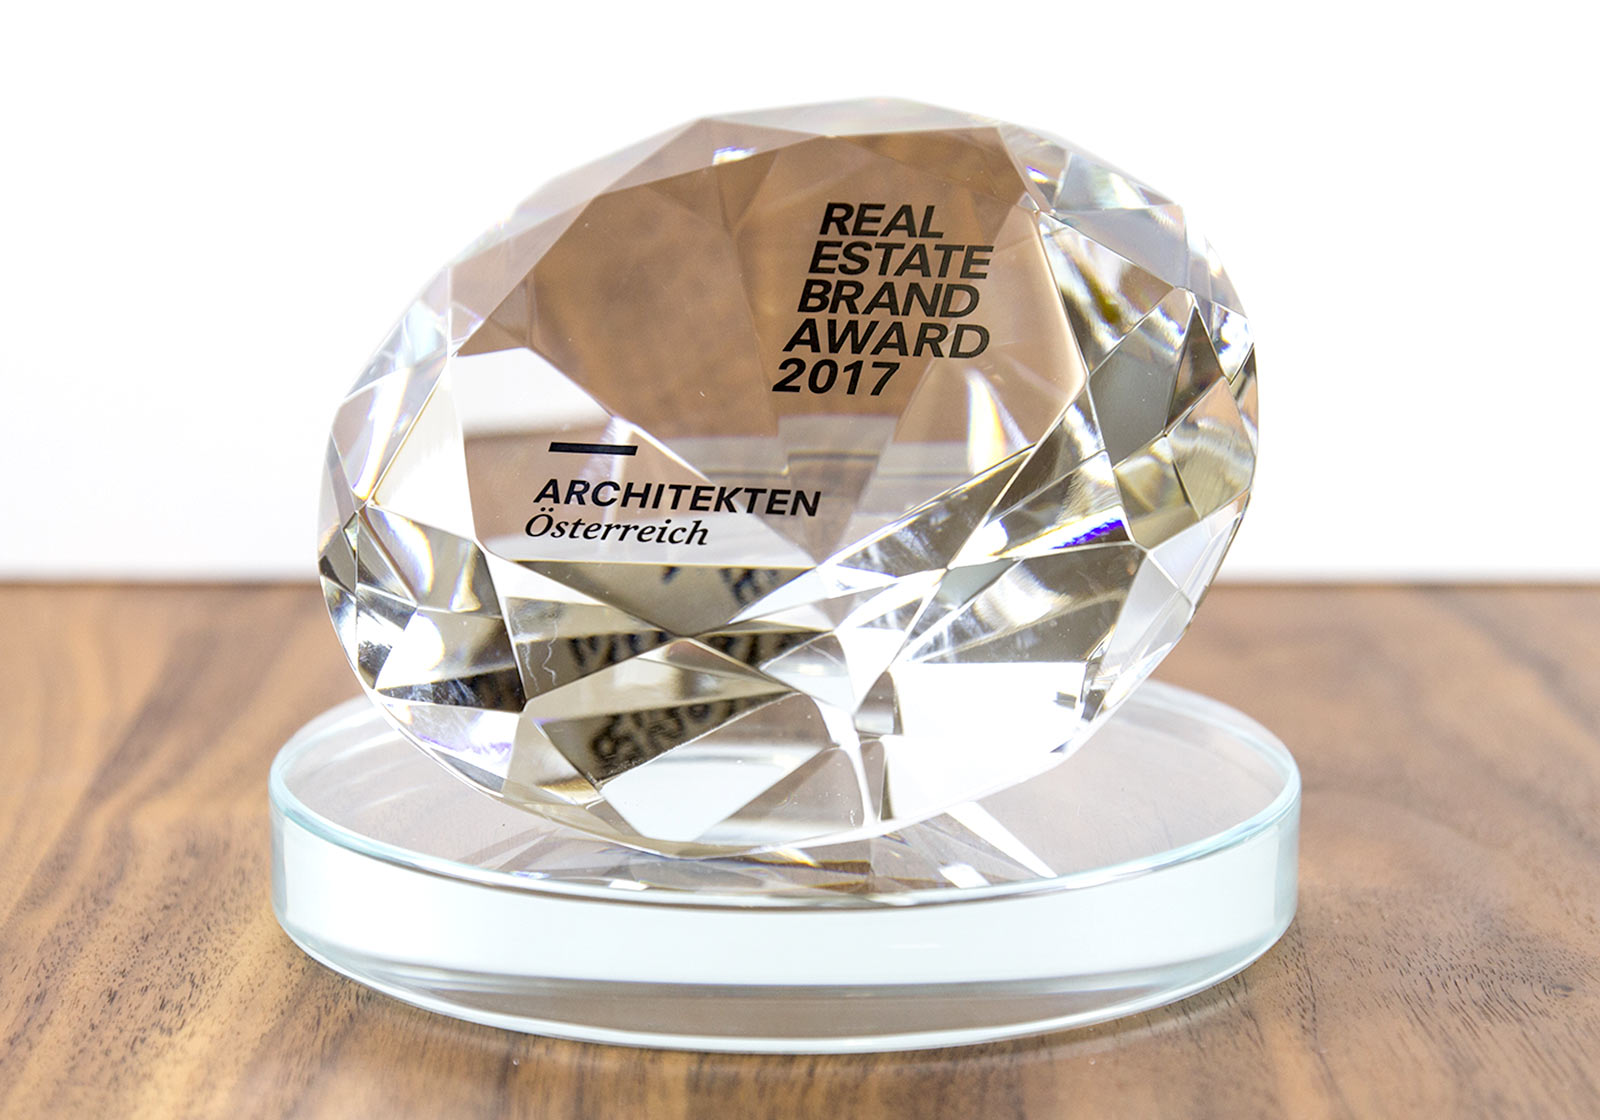 Real Estate Brand Award 2017. Foto: EUREB-Institute/Philip Miram